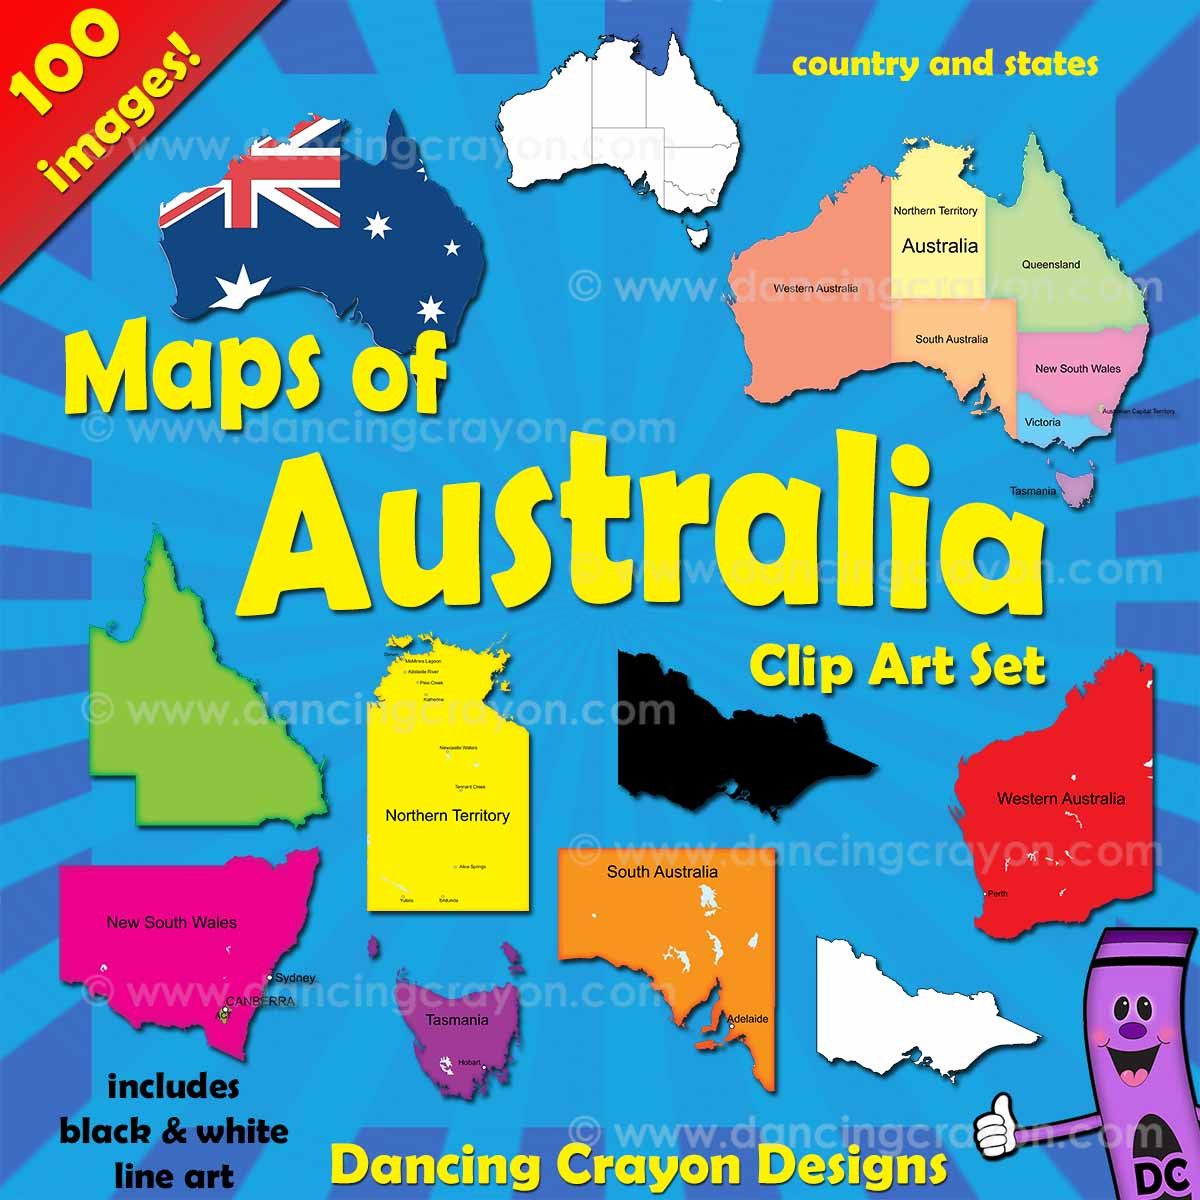 Map Of States Of Australia.Australia Maps Clip Art Maps Of Australia And Australian States